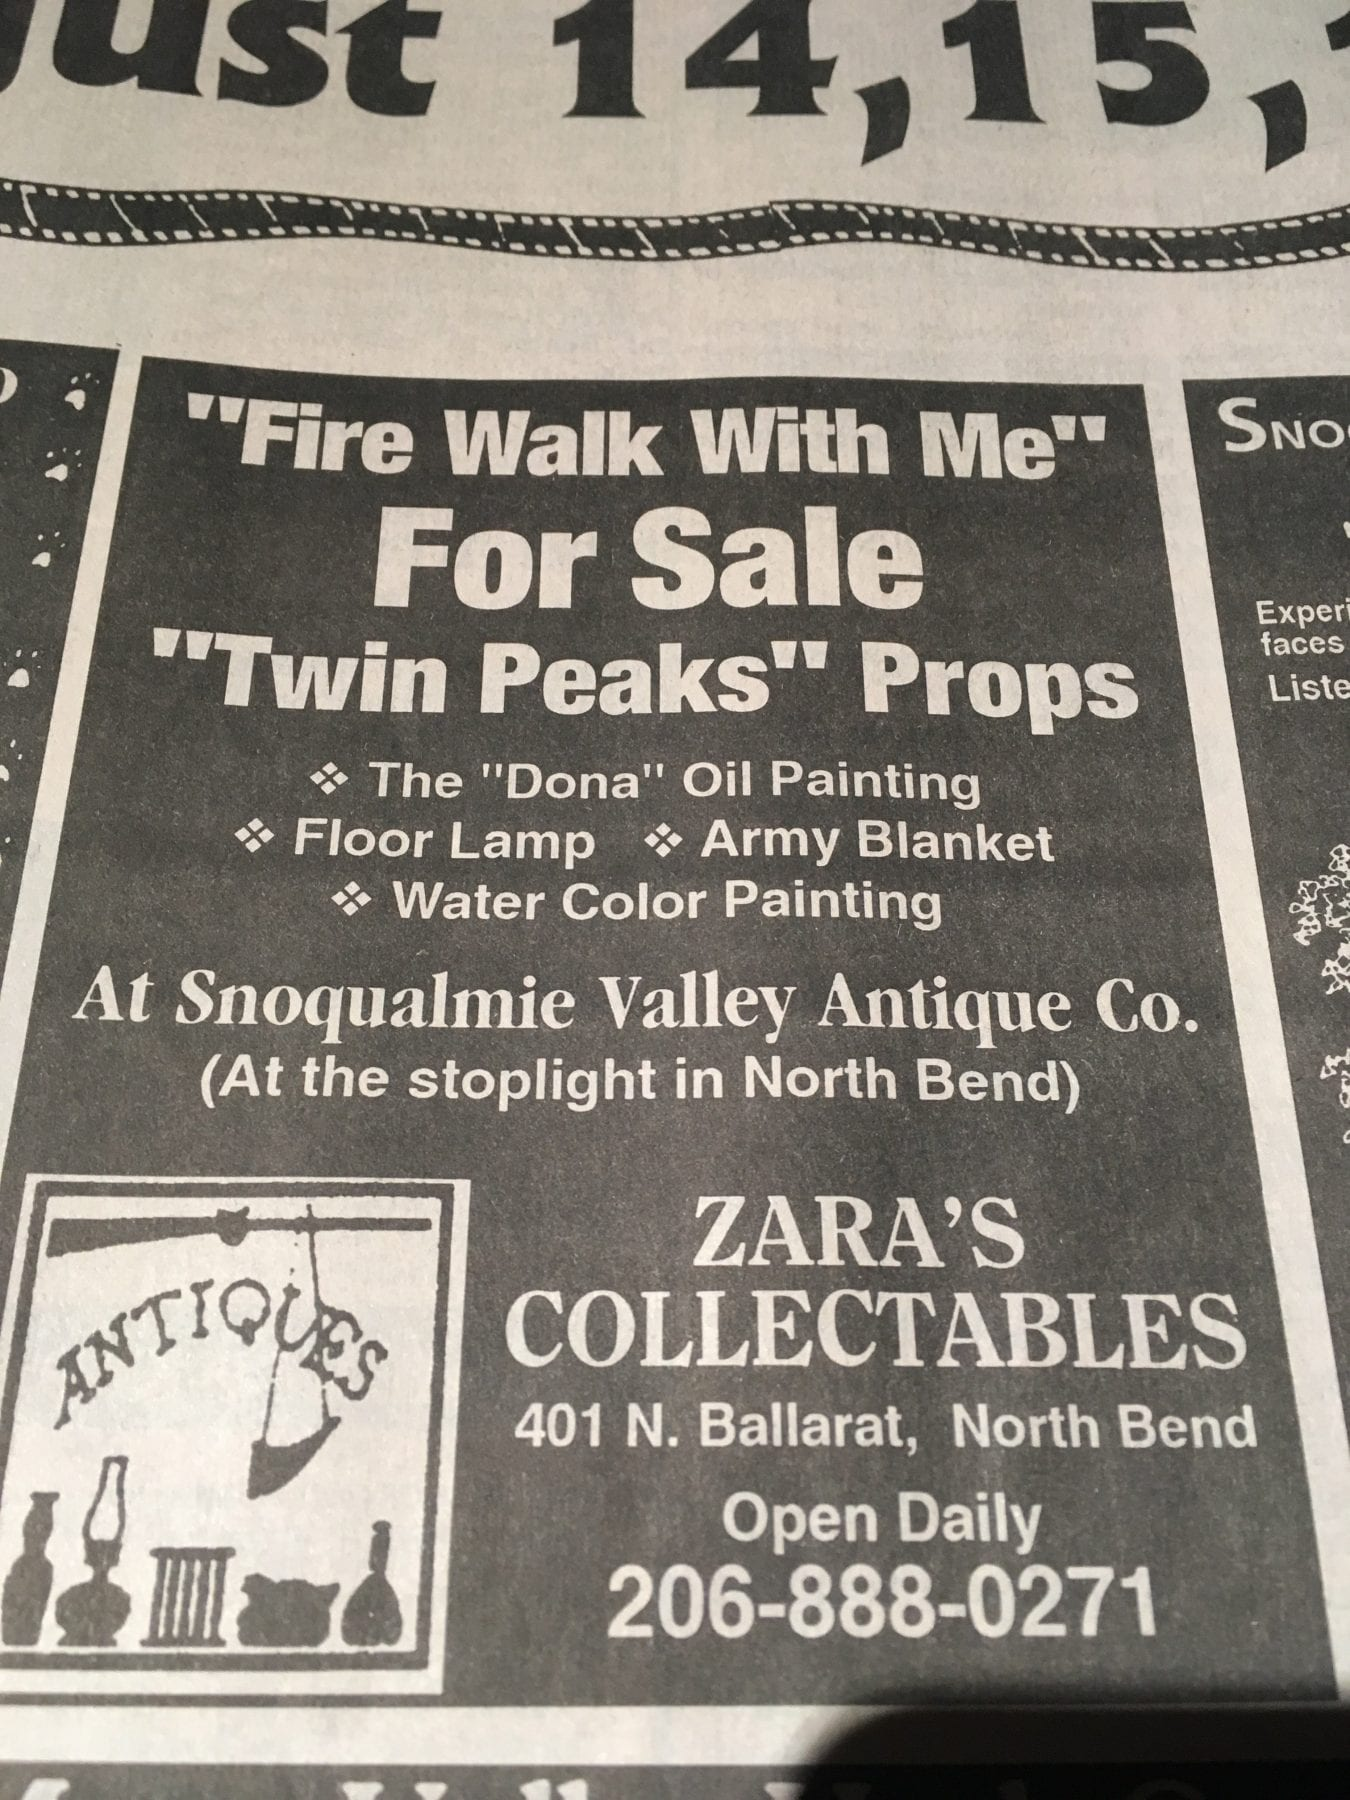 Clipping from Snoqualmie Valley Record, Zara's collectibles North Bend